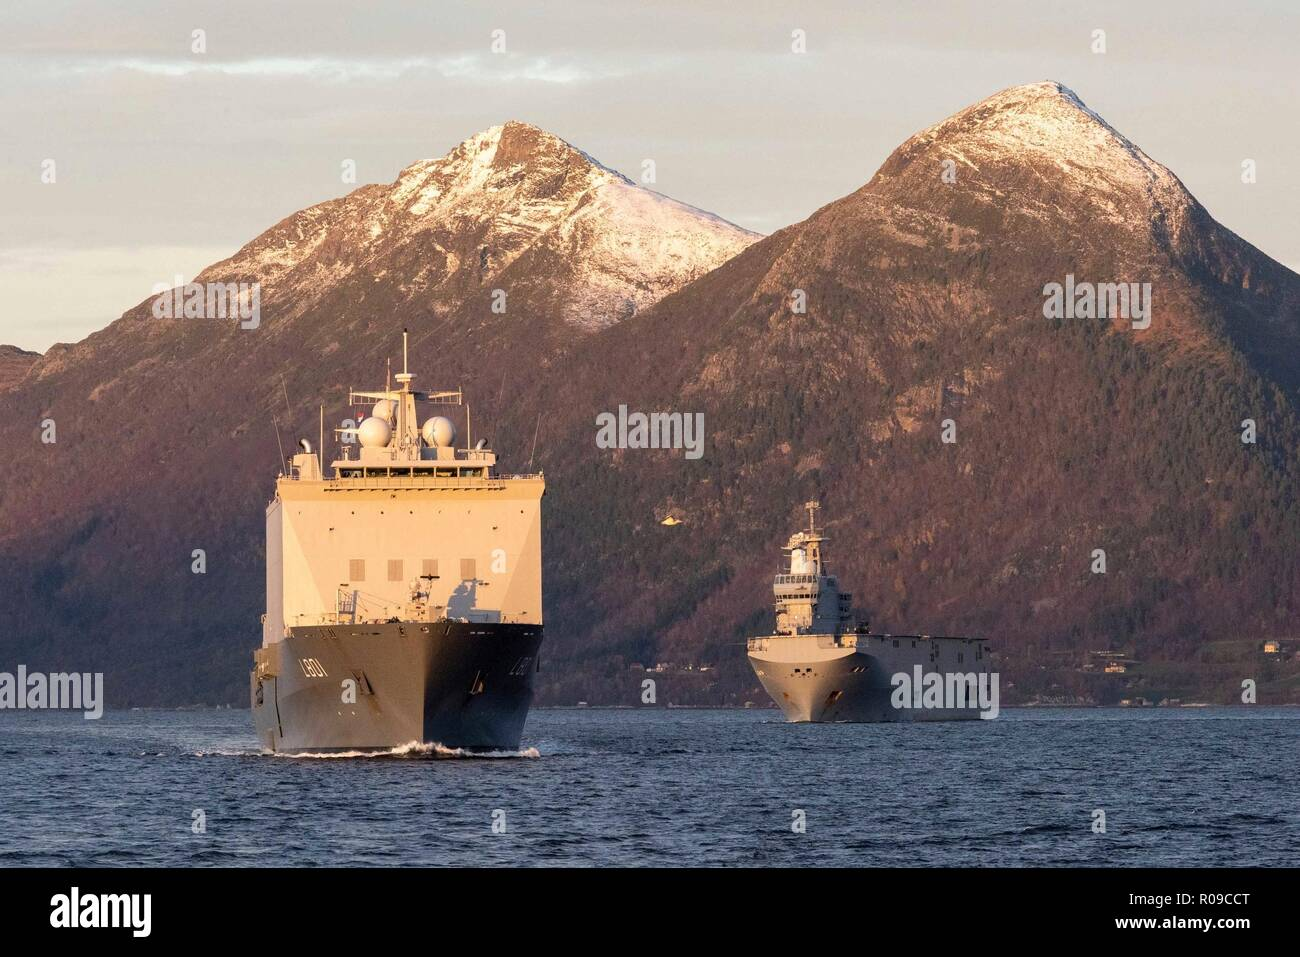 Molde Fjords, Norway. 01st Nov, 2018. The Royal Dutch Navy ship HNLMS Johan de Witt, left, escorts the French Naval ship Fs Dixmude in an Amphibious Assault during Exercise Trident Juncture 18 November 1, 2018 in Molde Fjords, Norway. The multi-national exercise is the largest NATO exercise since 2015, and includes more than 50,000 military members from 31 countries. Credit: Planetpix/Alamy Live News - Stock Image